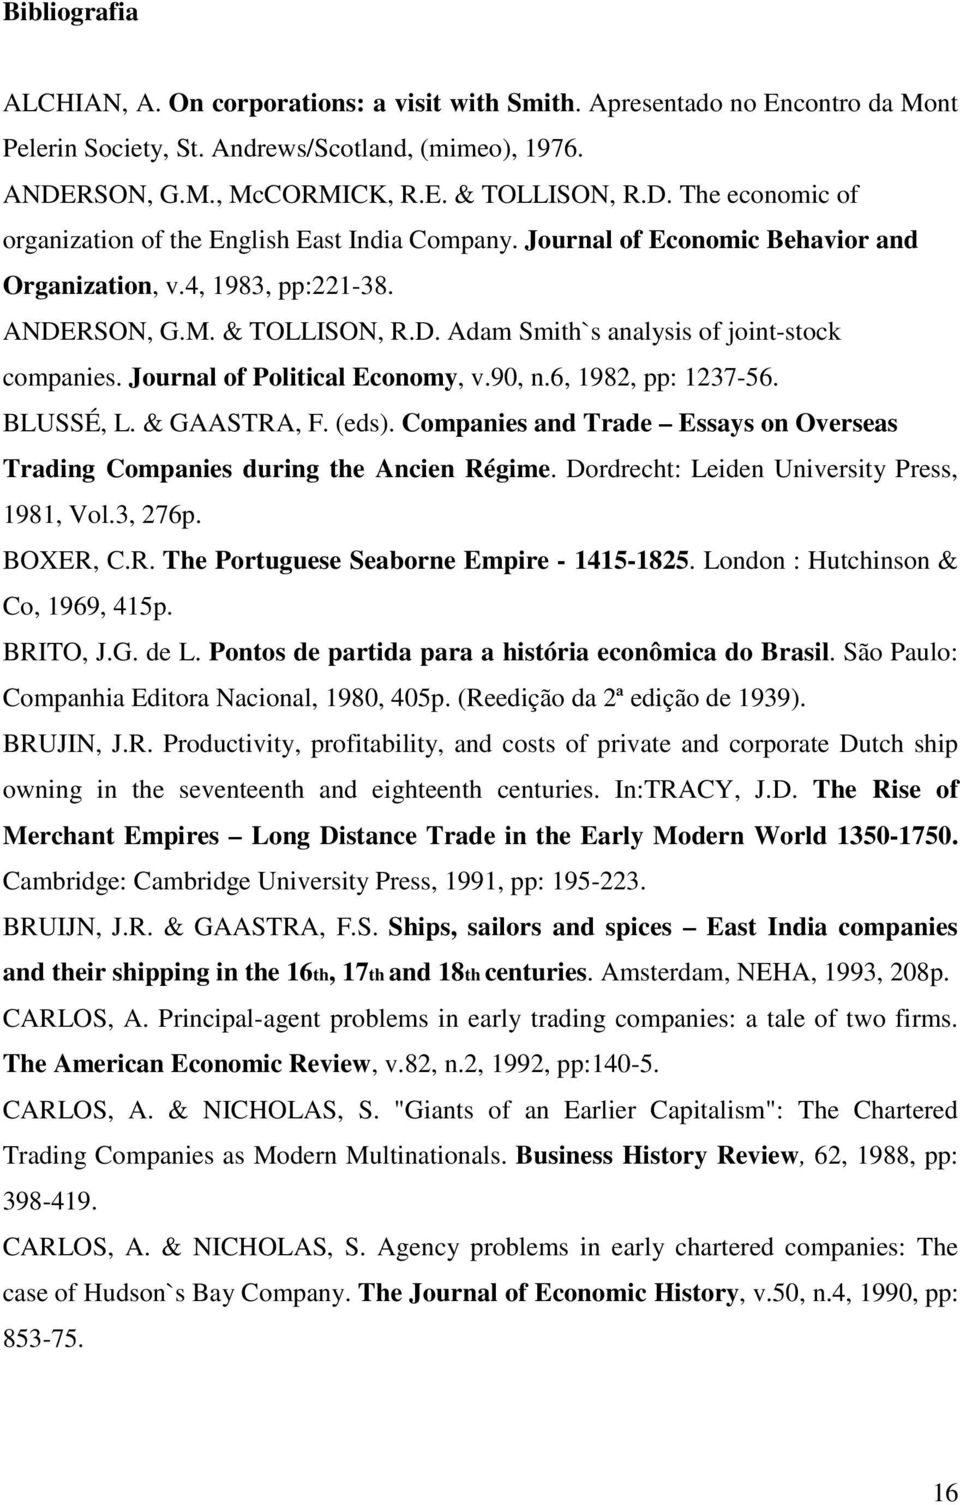 Journal of Political Economy, v.90, n.6, 1982, pp: 1237-56. BLUSSÉ, L. & GAASTRA, F. (eds). Companies and Trade Essays on Overseas Trading Companies during the Ancien Régime.